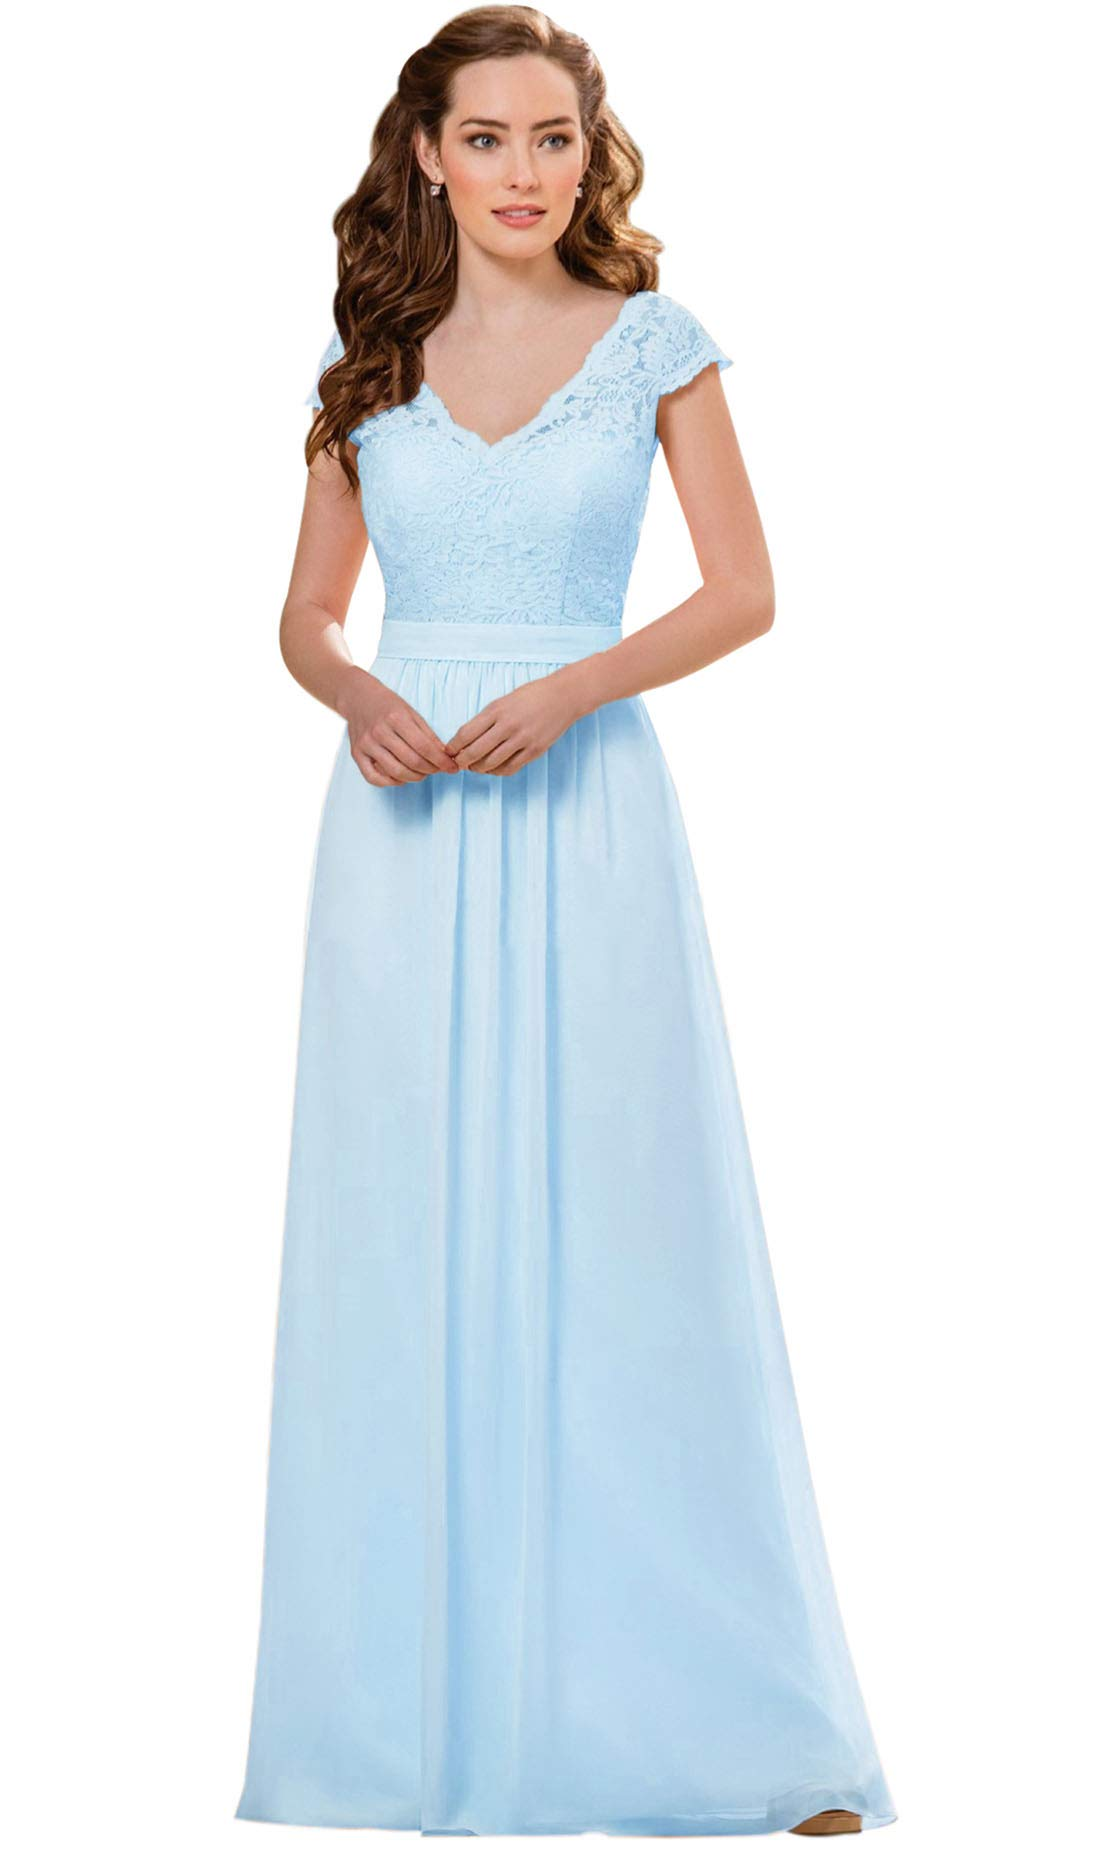 37e8735860c Zhongde Women s V-Neck Cap Sleeves Chiffon Party Gown Floor Length Lace  Bridesmaid Dress with Belt Bady Blue Size 4